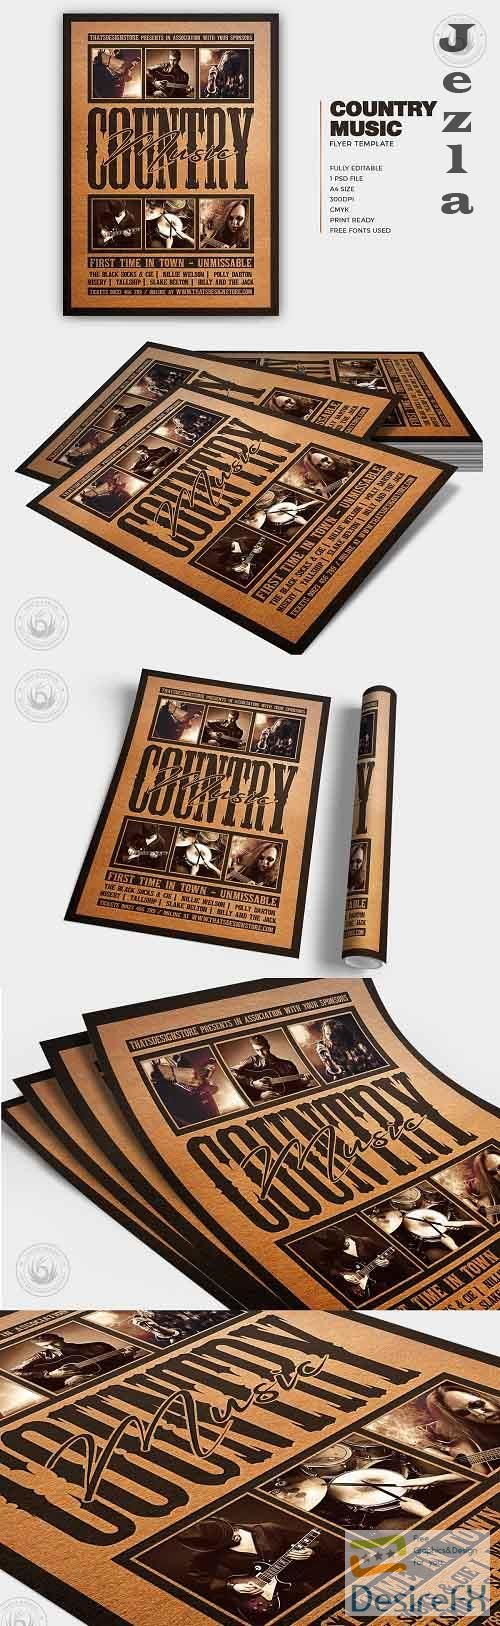 Country Music Flyer Template V4 - 5758525